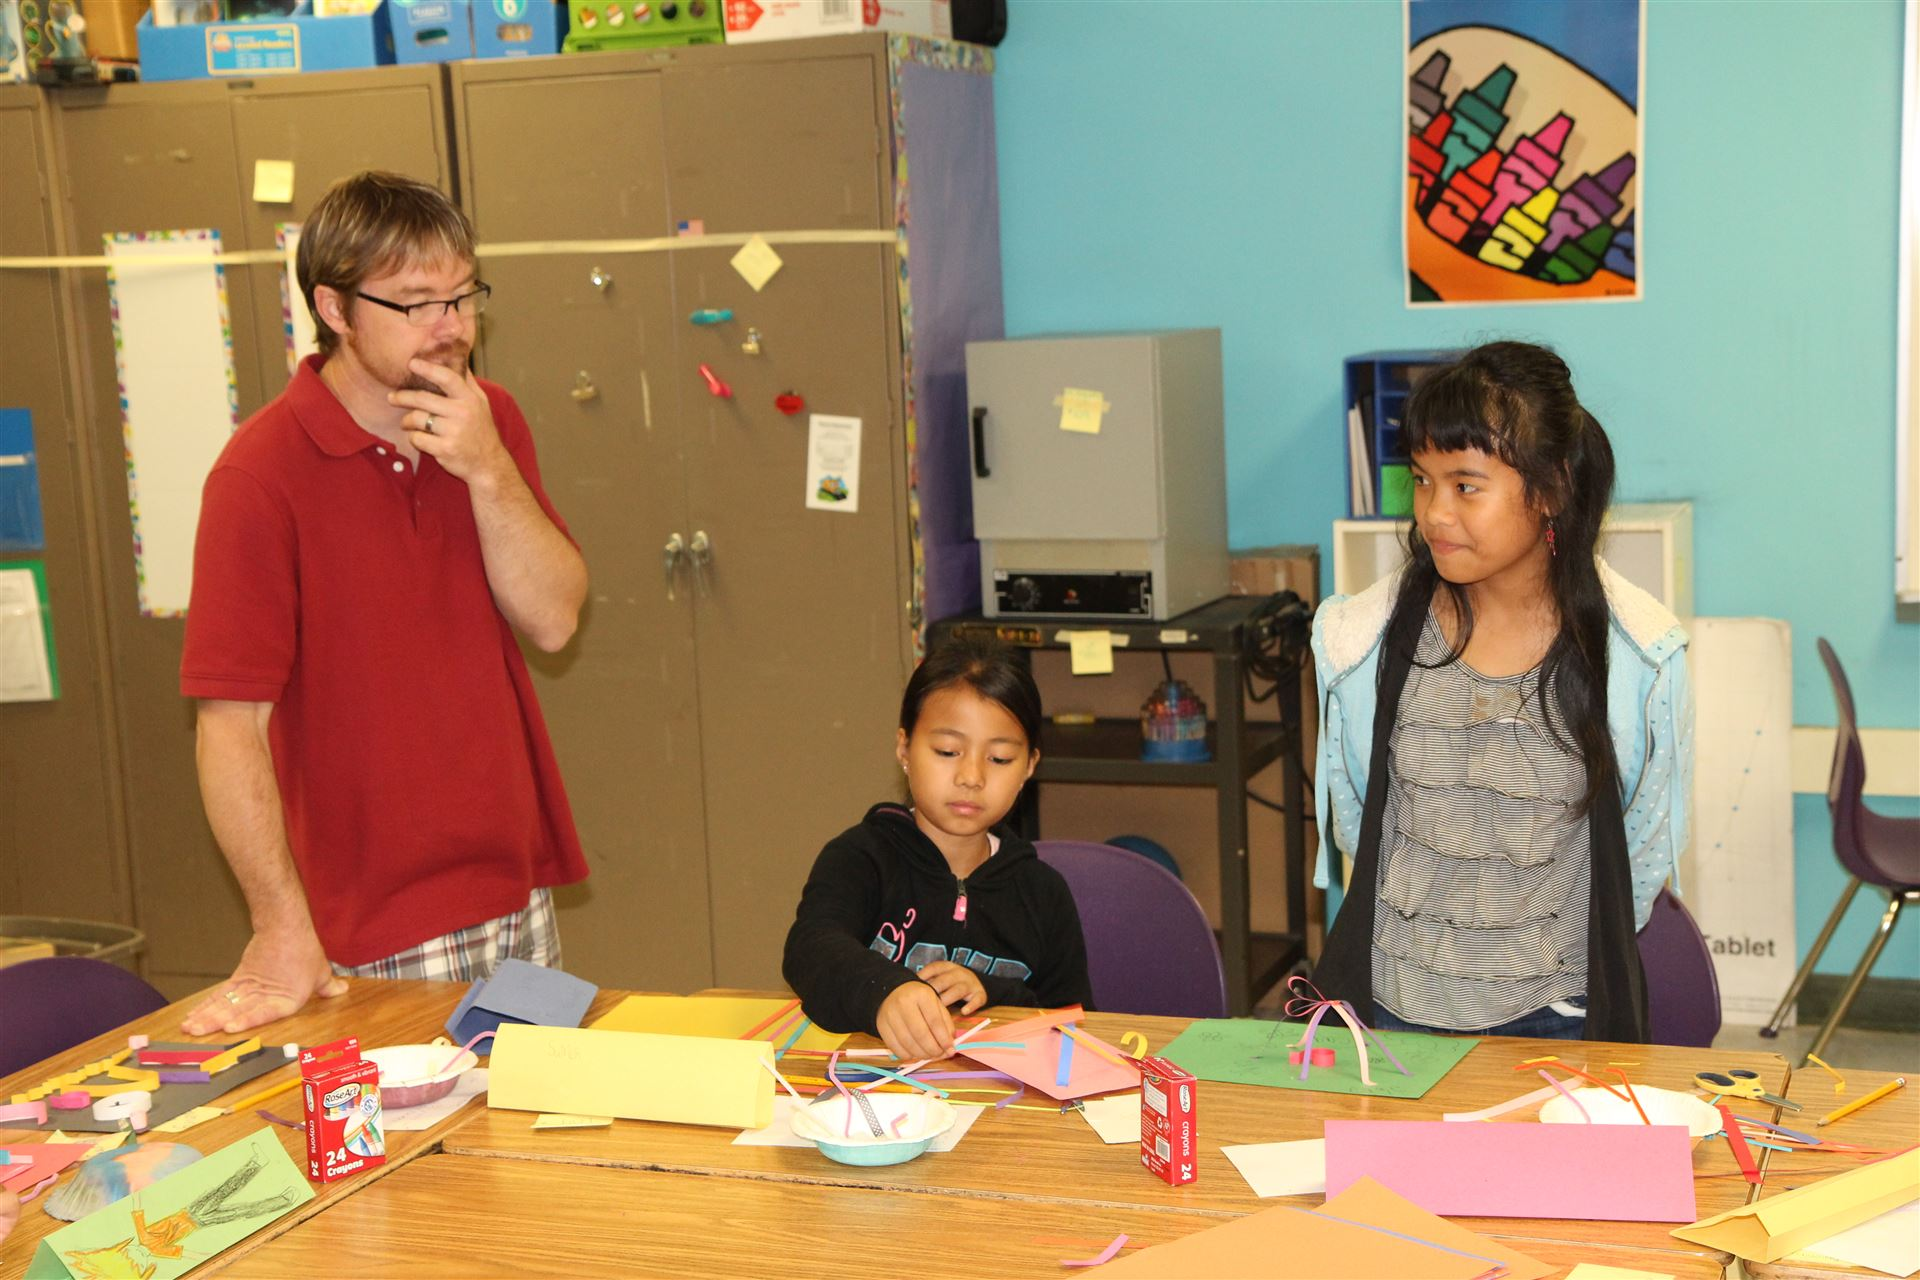 English Learners Camp at Warren Elementary